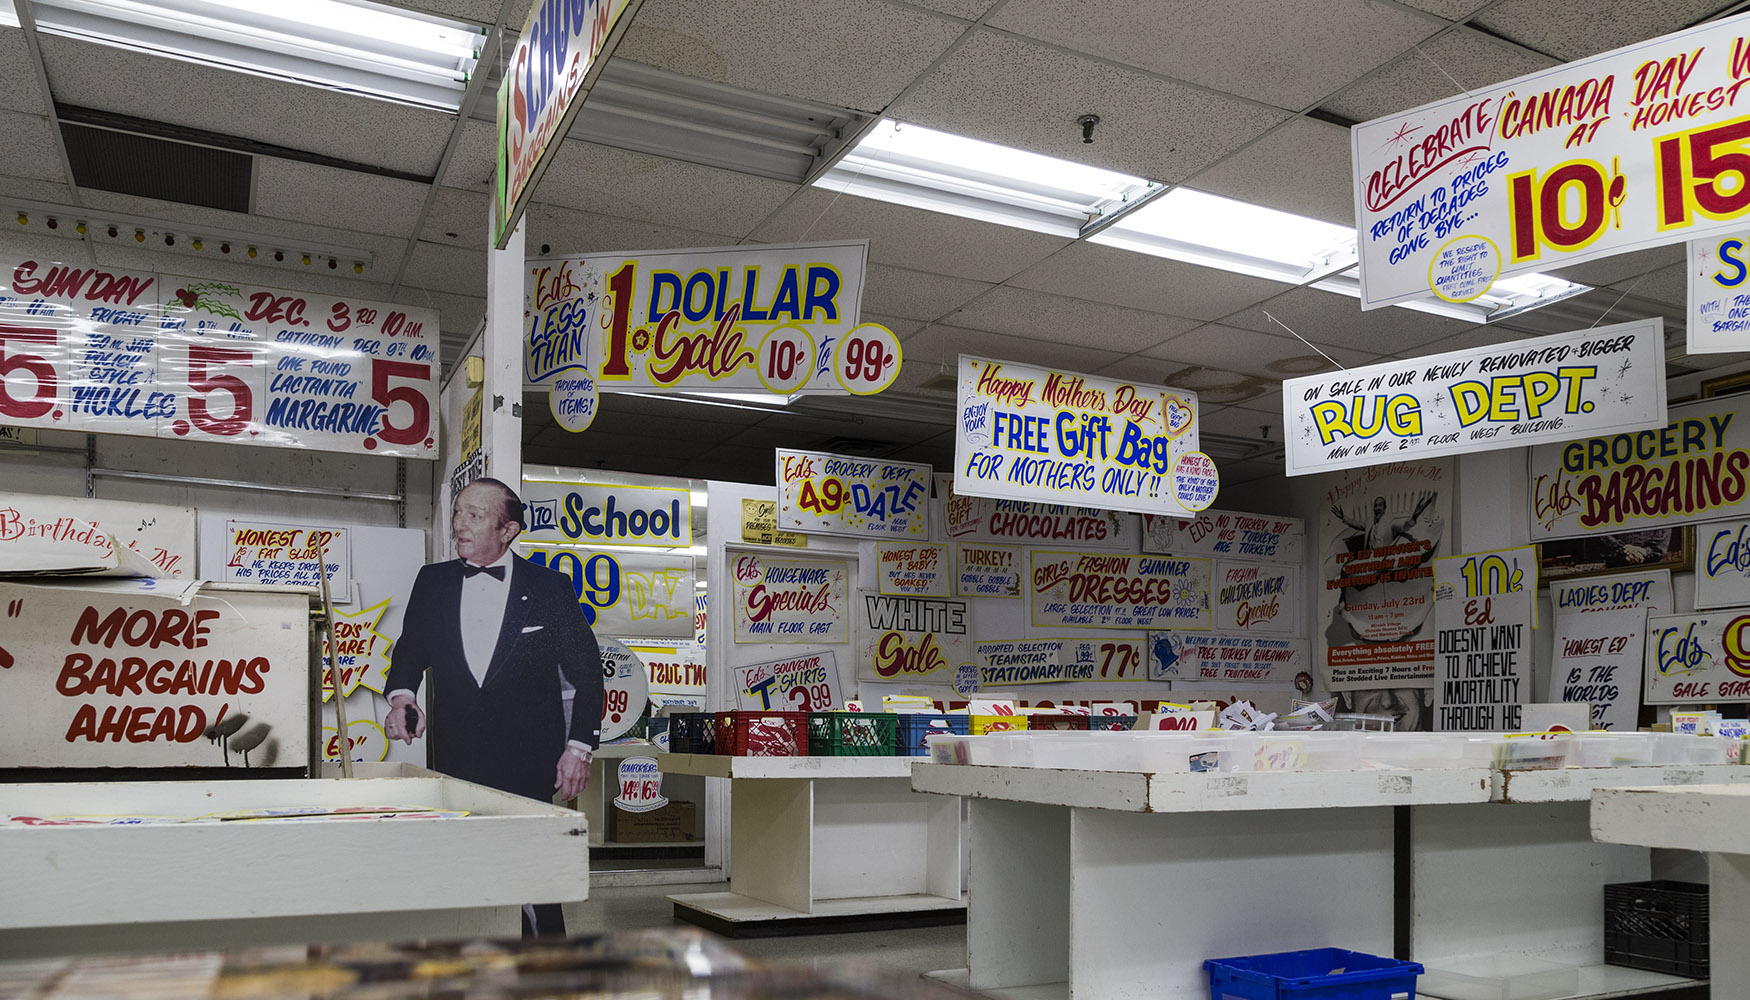 20161122. You can buy Honest Ed's signs but they are not necessa